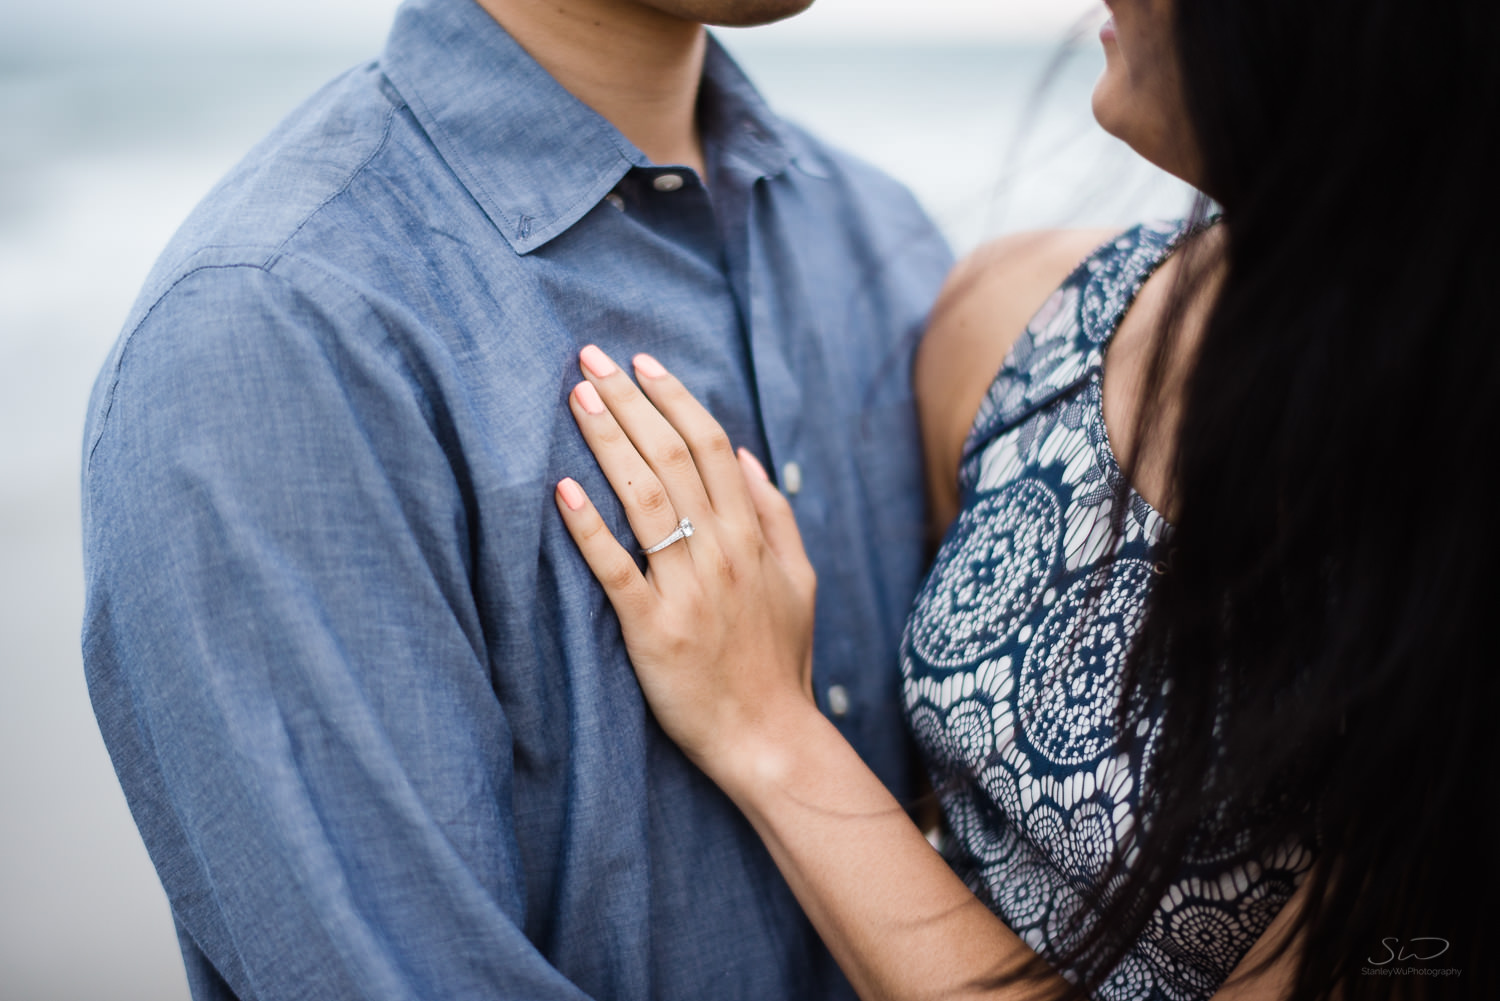 downtown-santa-monica-pier-and-beach-engagement-stanley-wu-photography-los-angeles-portrait-and-wedding-photographer-55.jpg